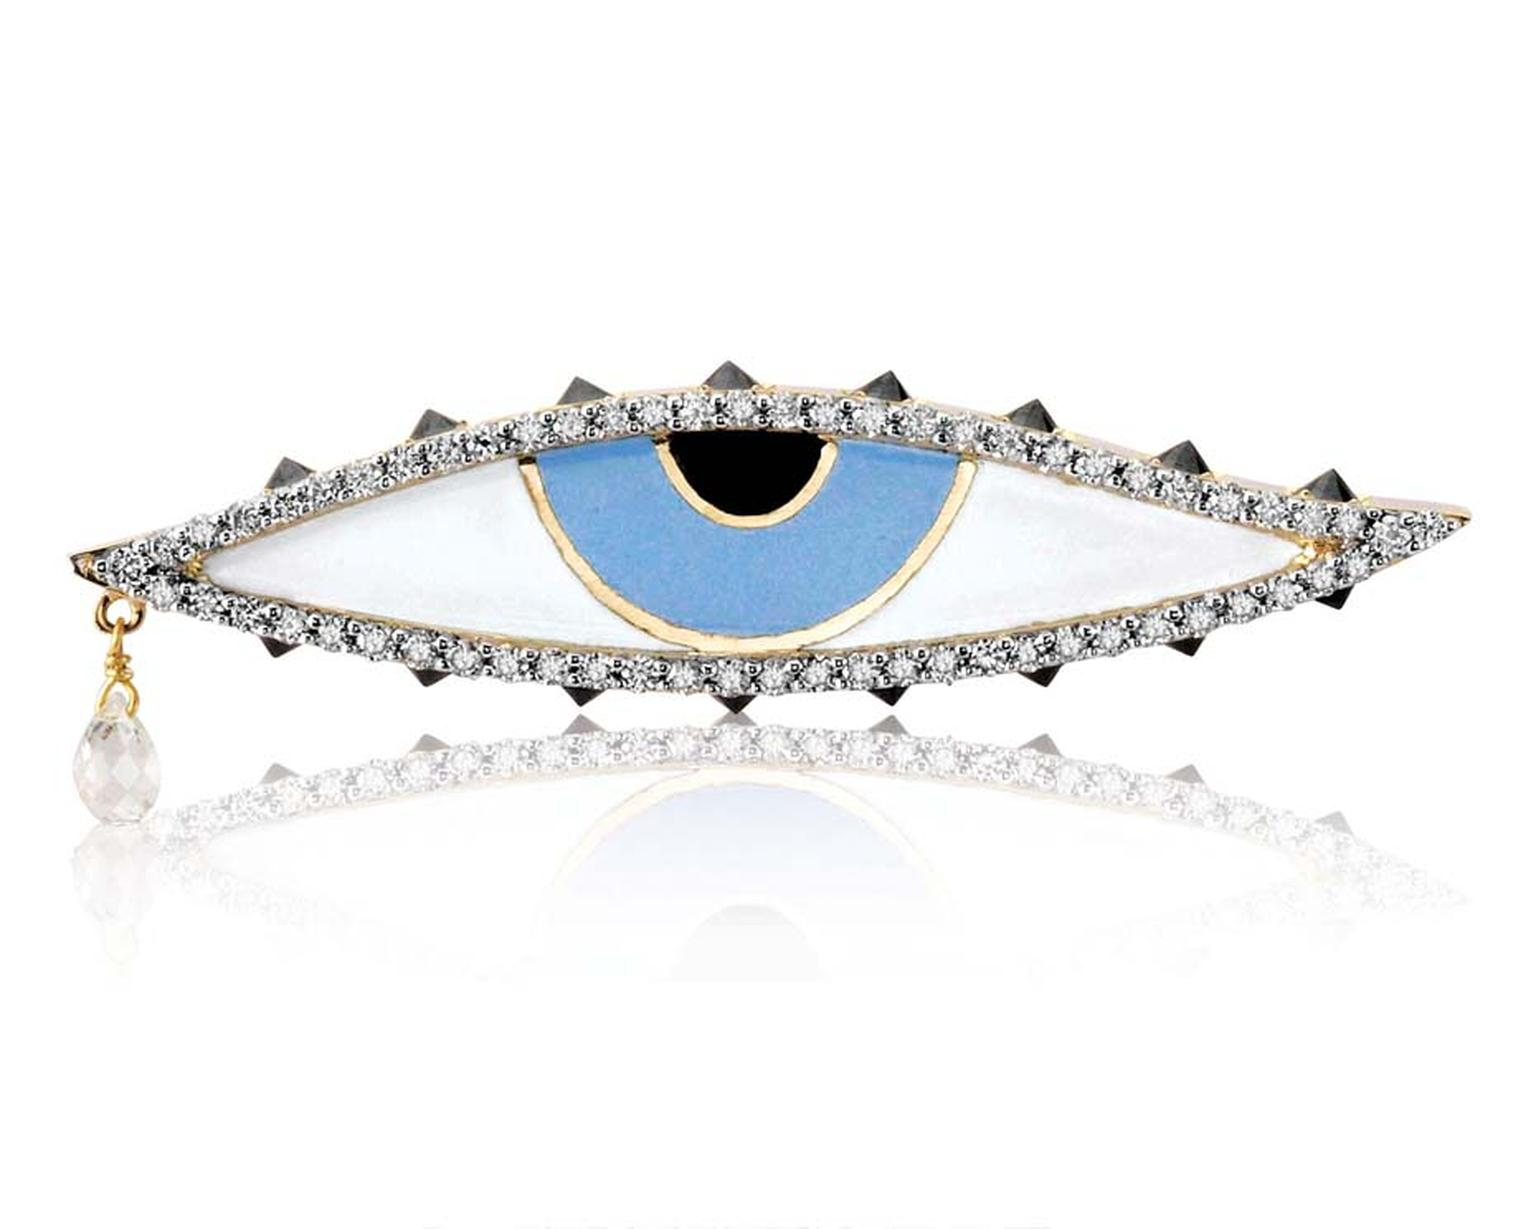 Holly Dyment Teary Eye ring featuring enamelwork, diamonds and a charm hanging from the tear duct.